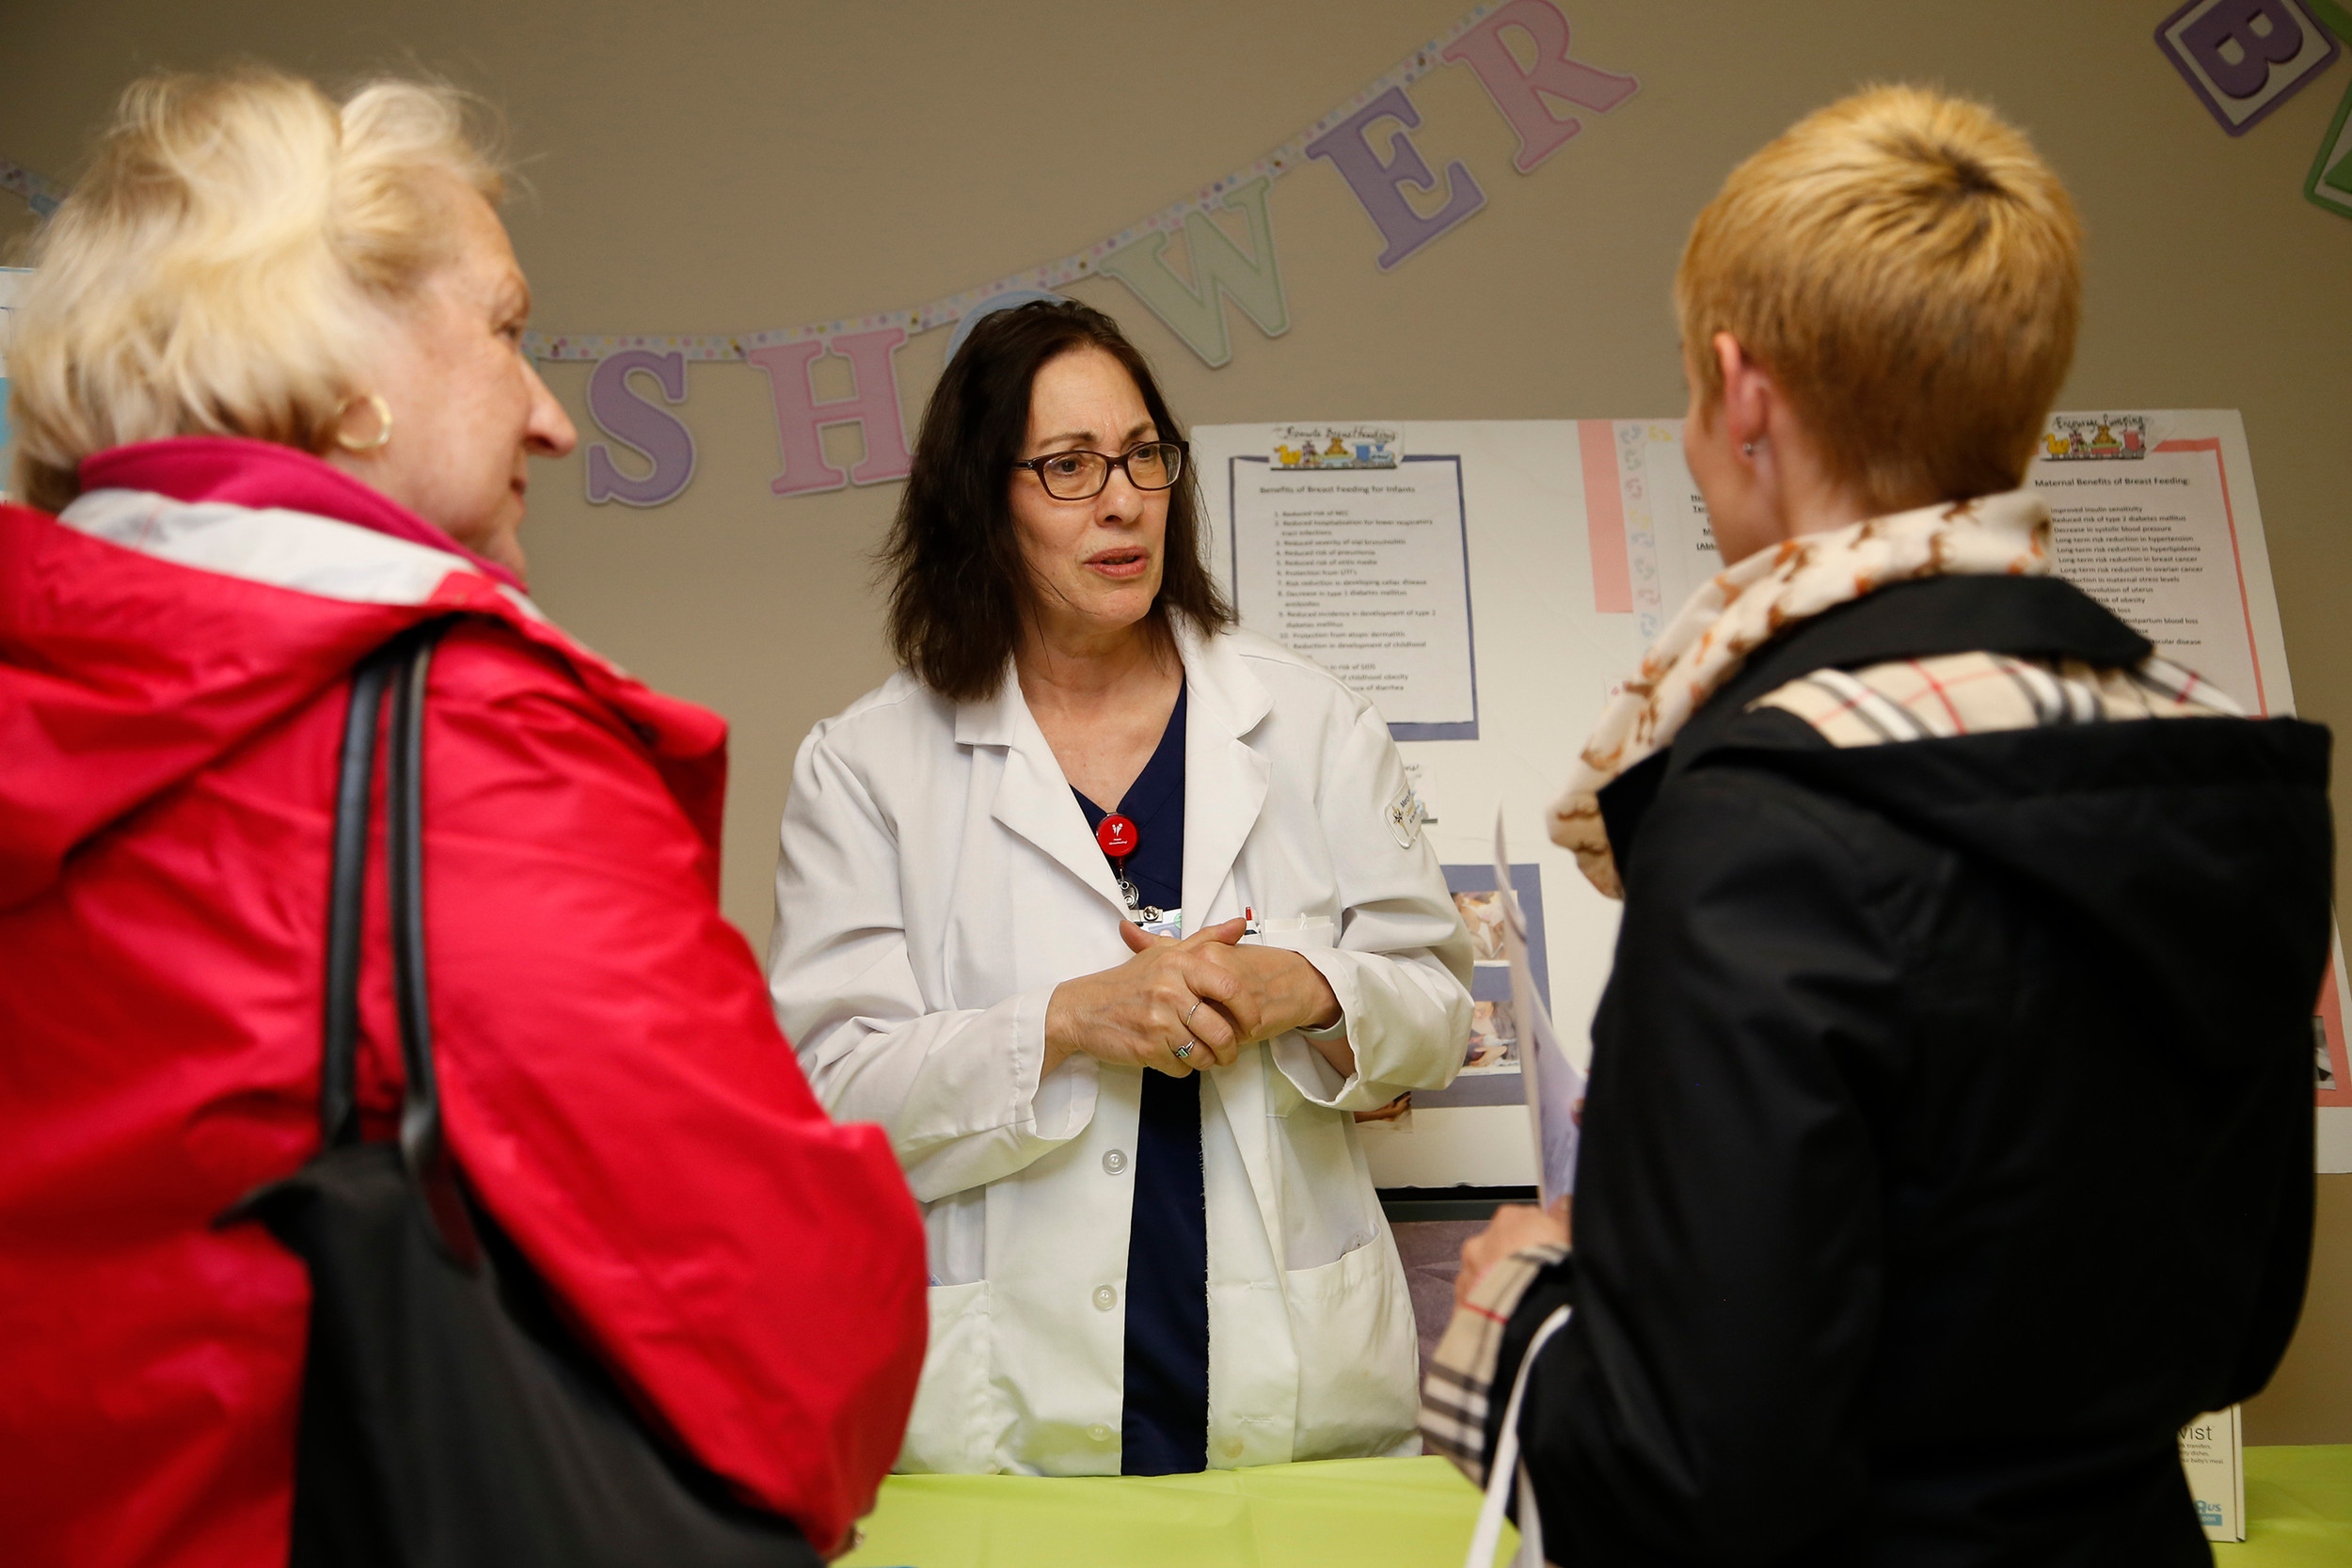 Mercy's Christine Foley, center, talks to Pam McLoughlin, left, and Anne Tepper about pre-natal classes.